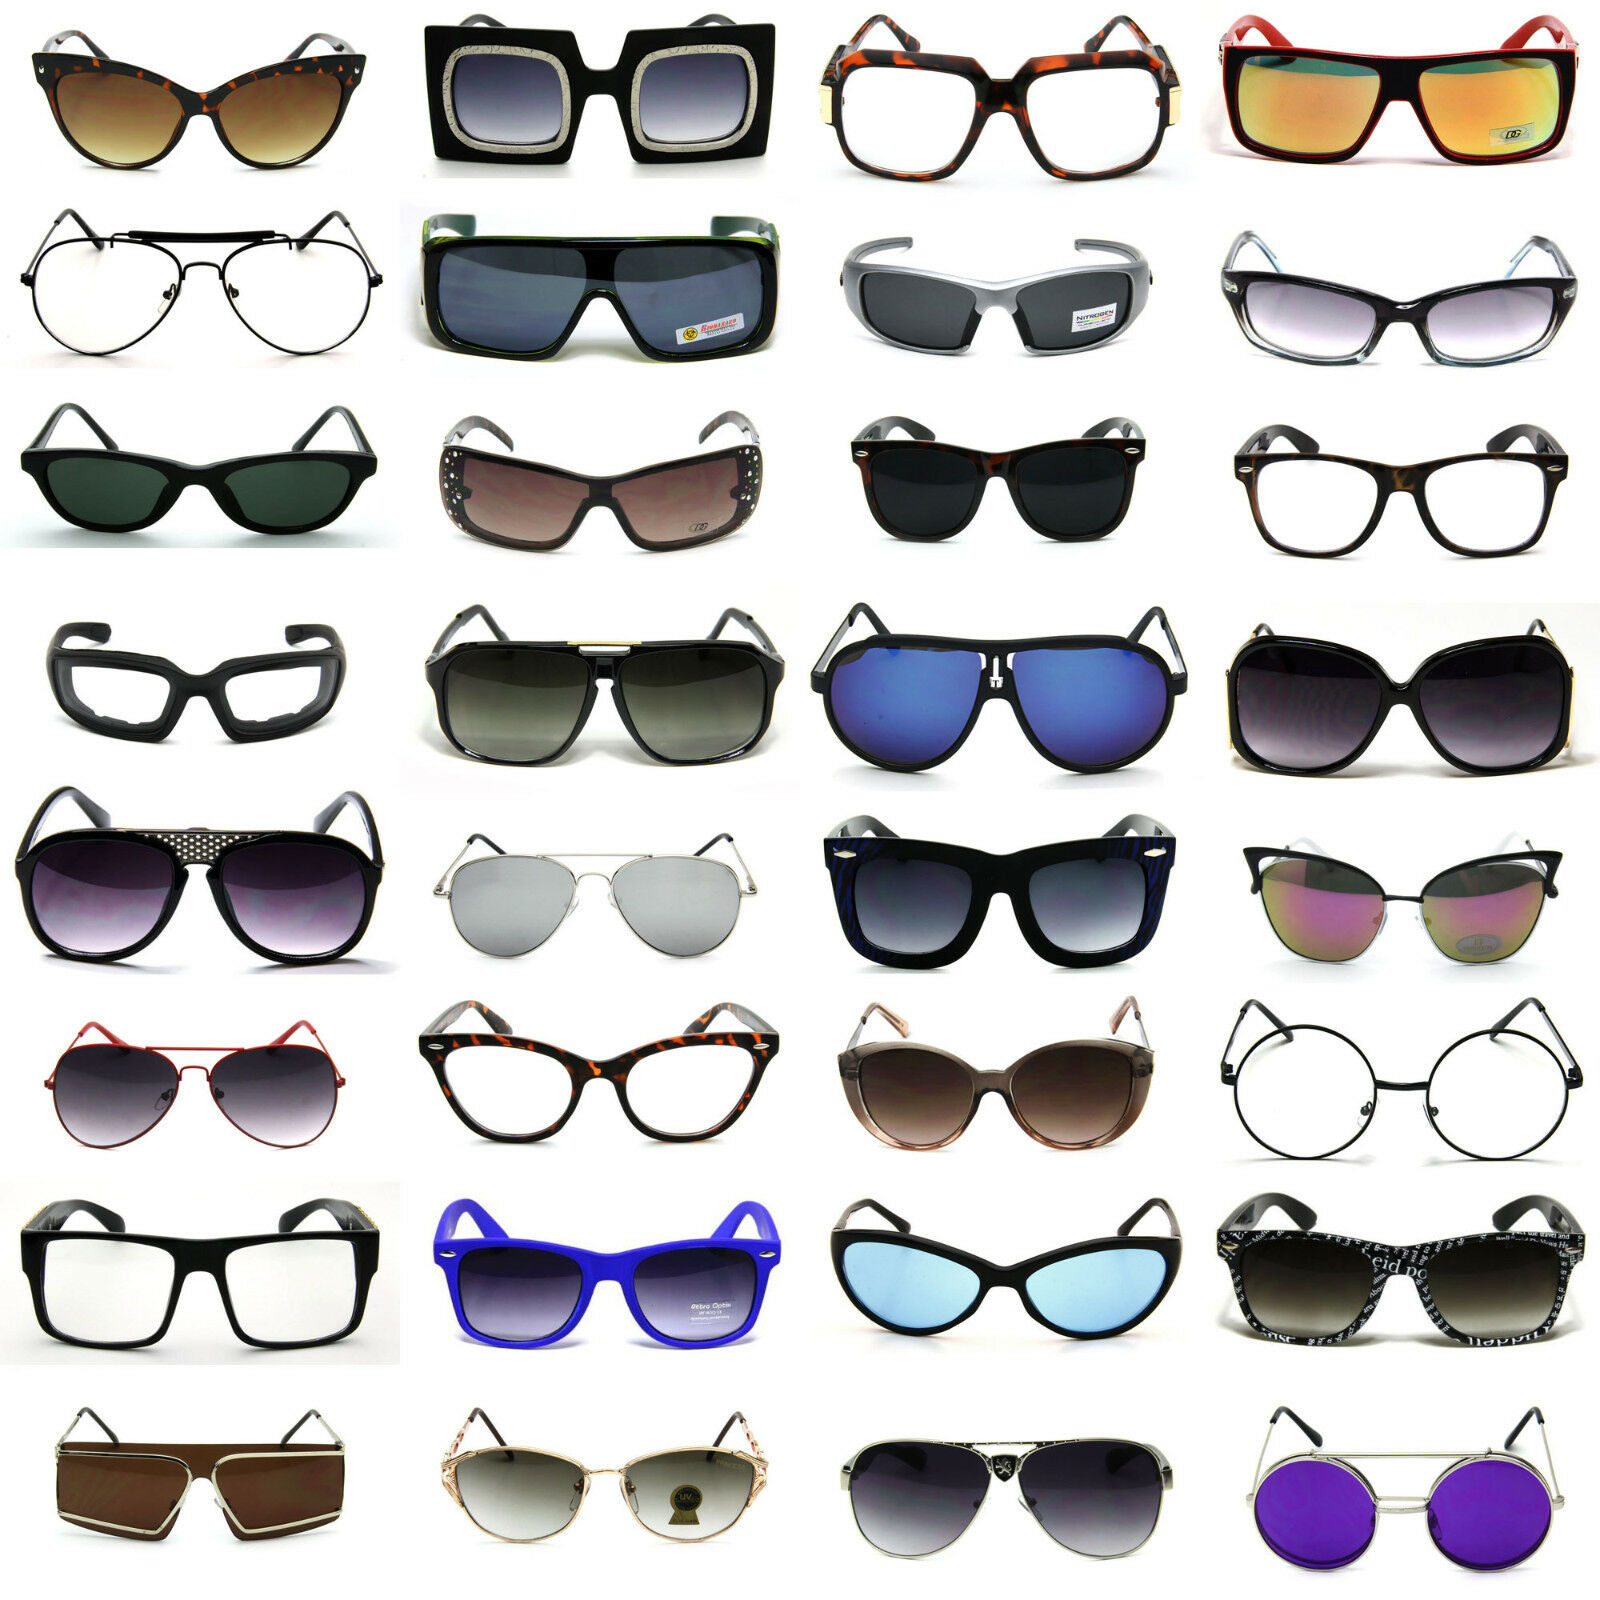 Sunglasses - best things to buy and sell for profit